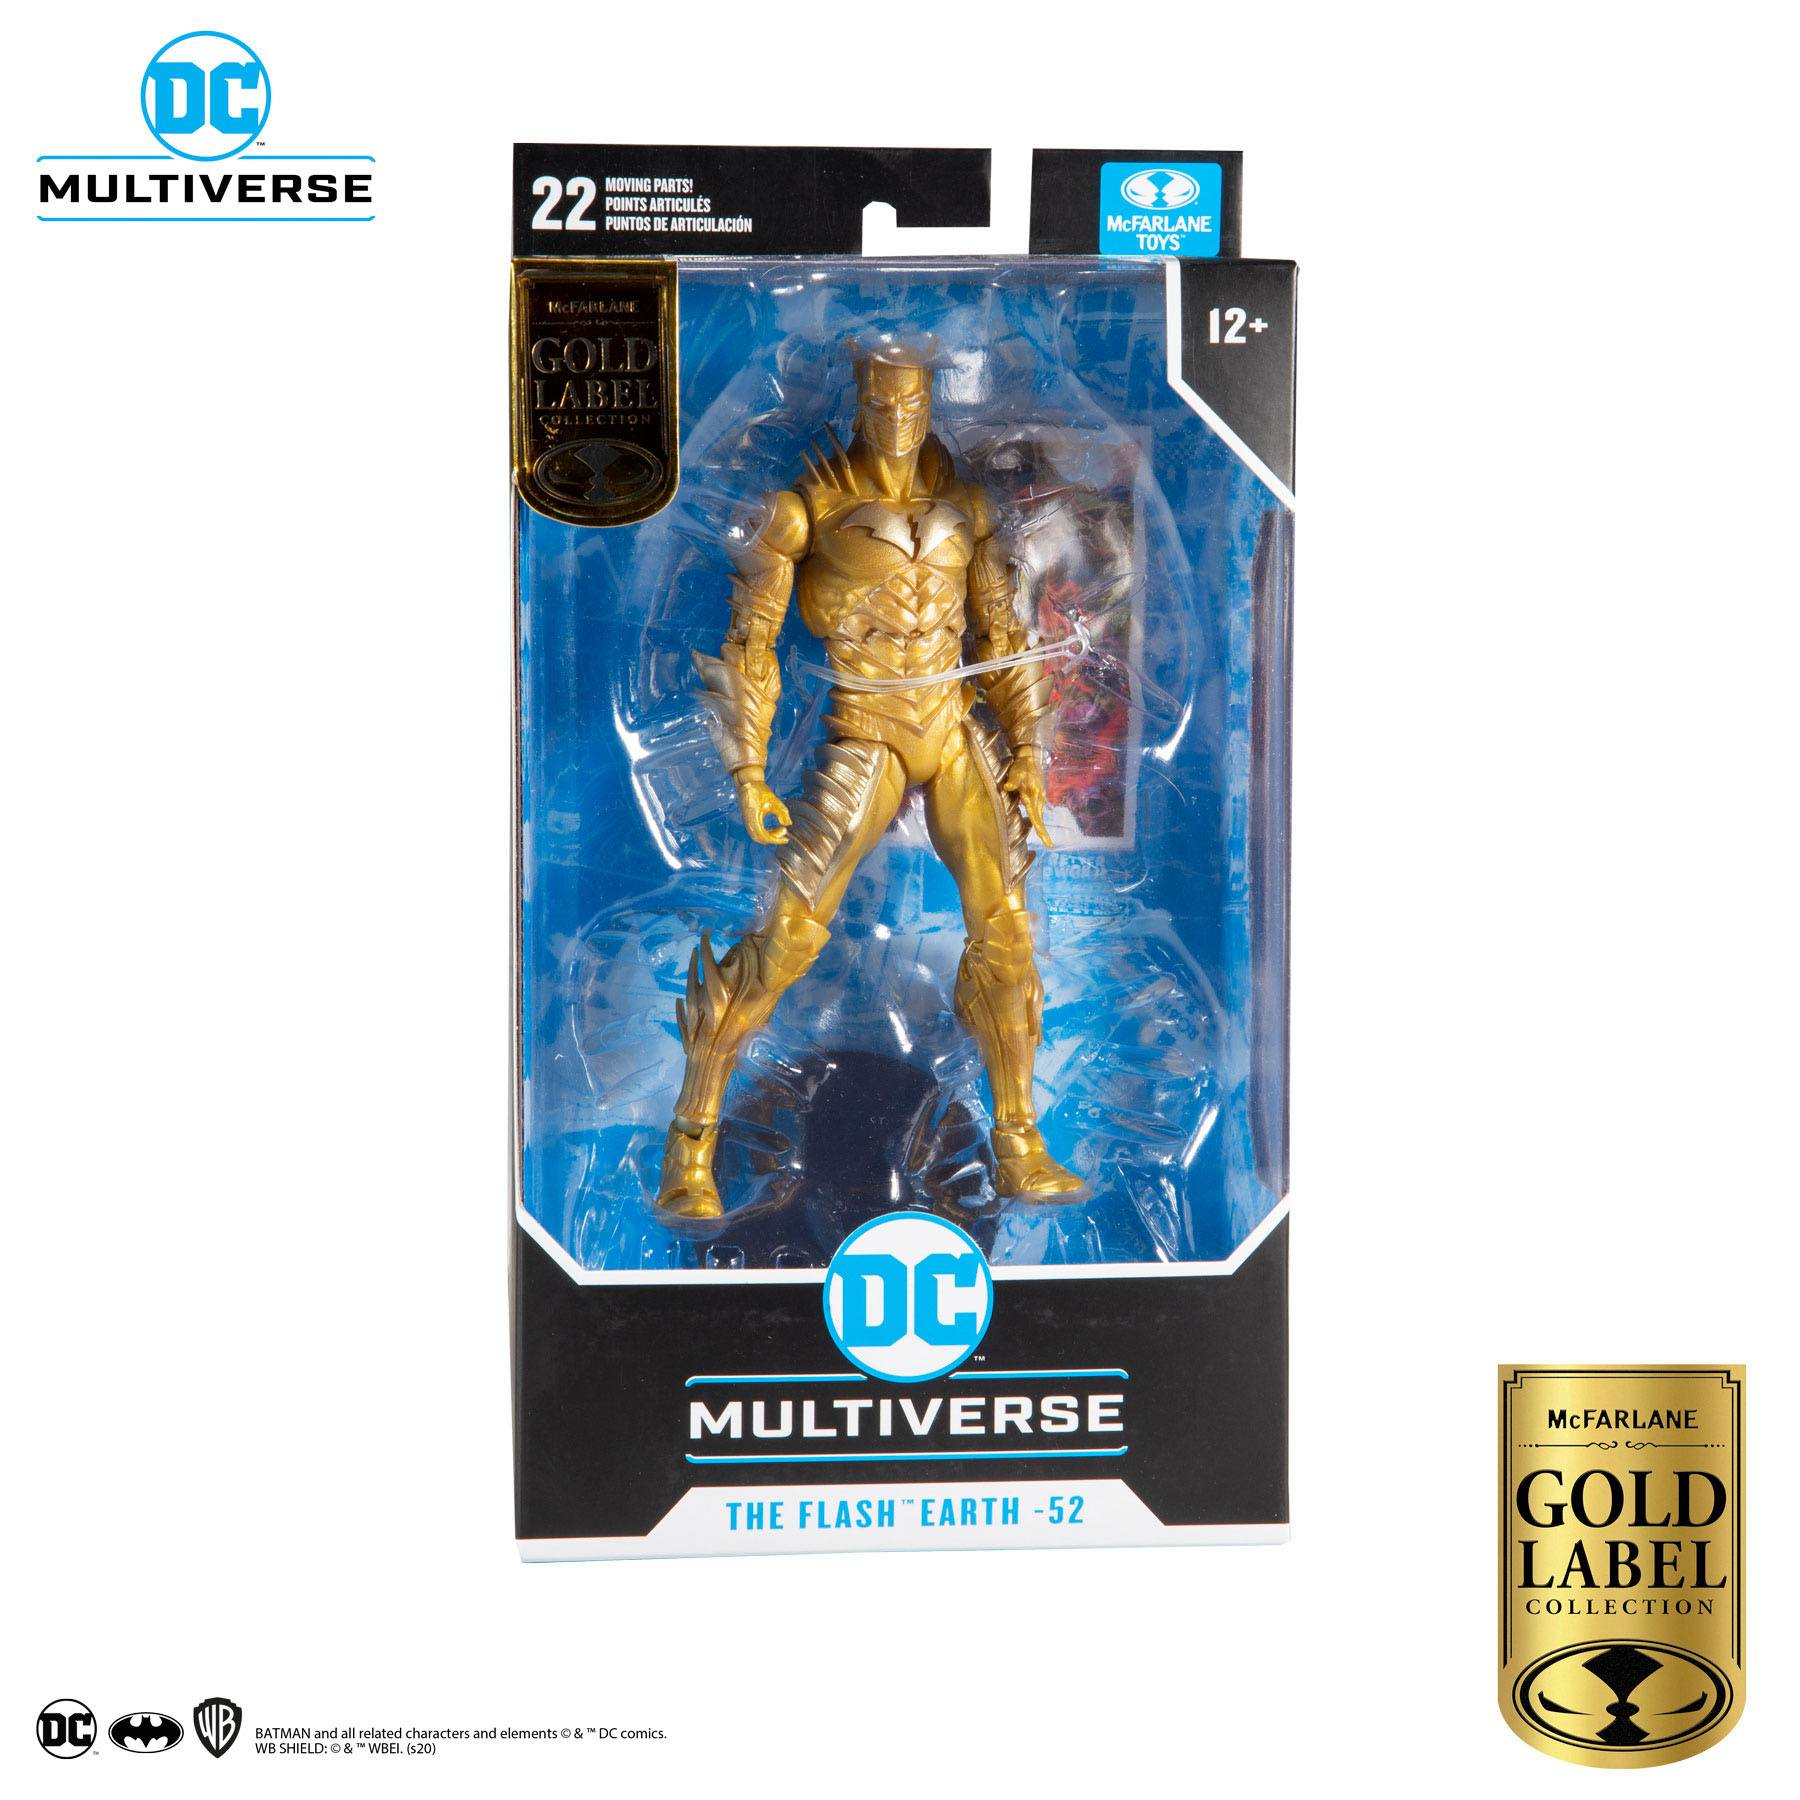 DC Multiverse Actionfigur Red Death Gold (Earth 52) (Gold Label Series) 18 cm MCF15151-0 787926151510